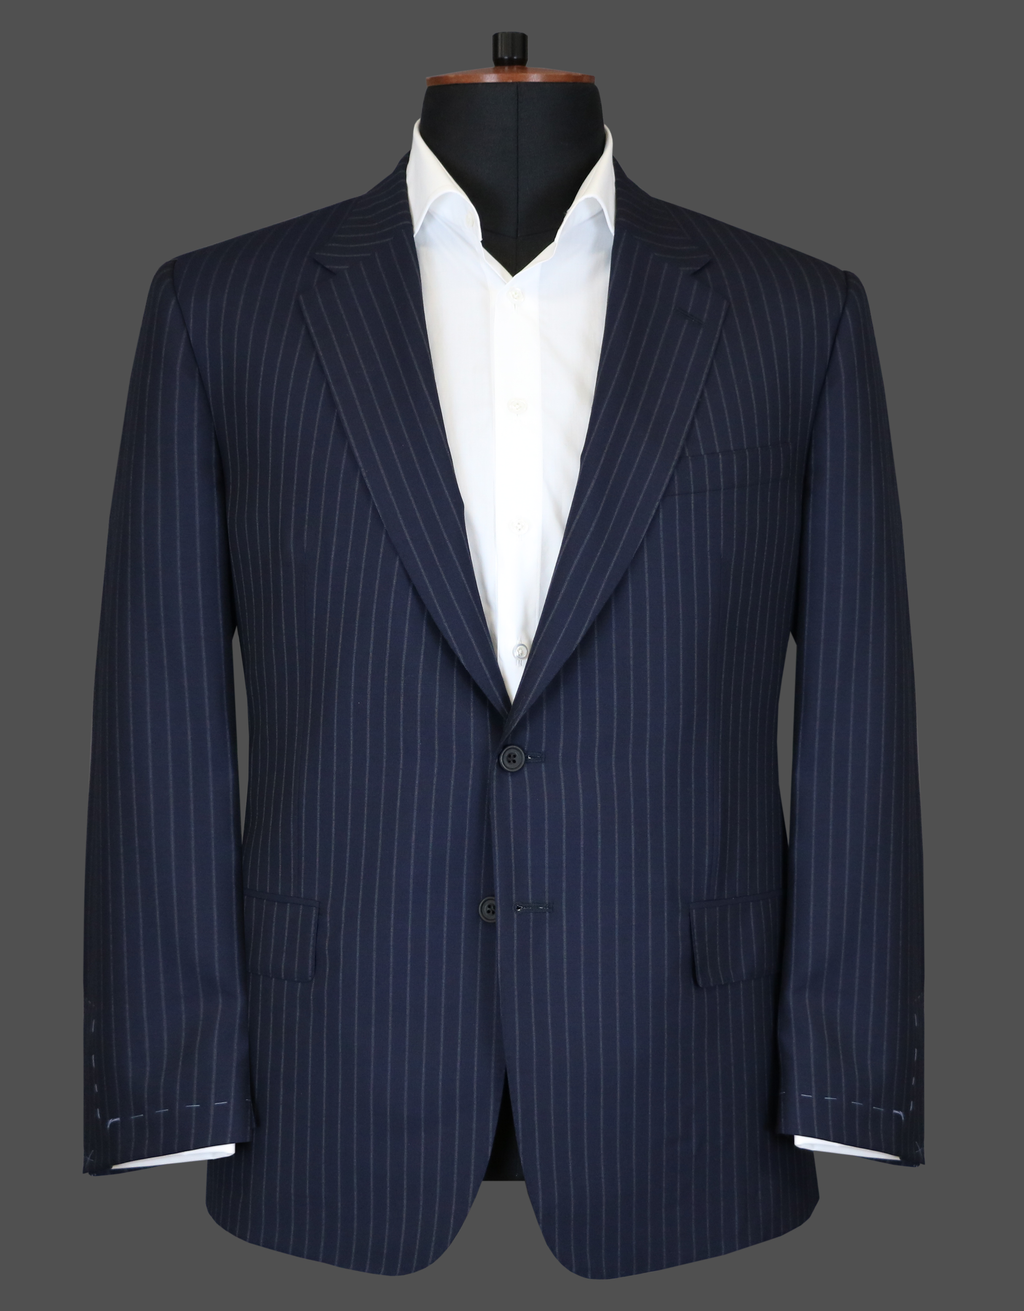 TLA048 - Navy Stripe Suit